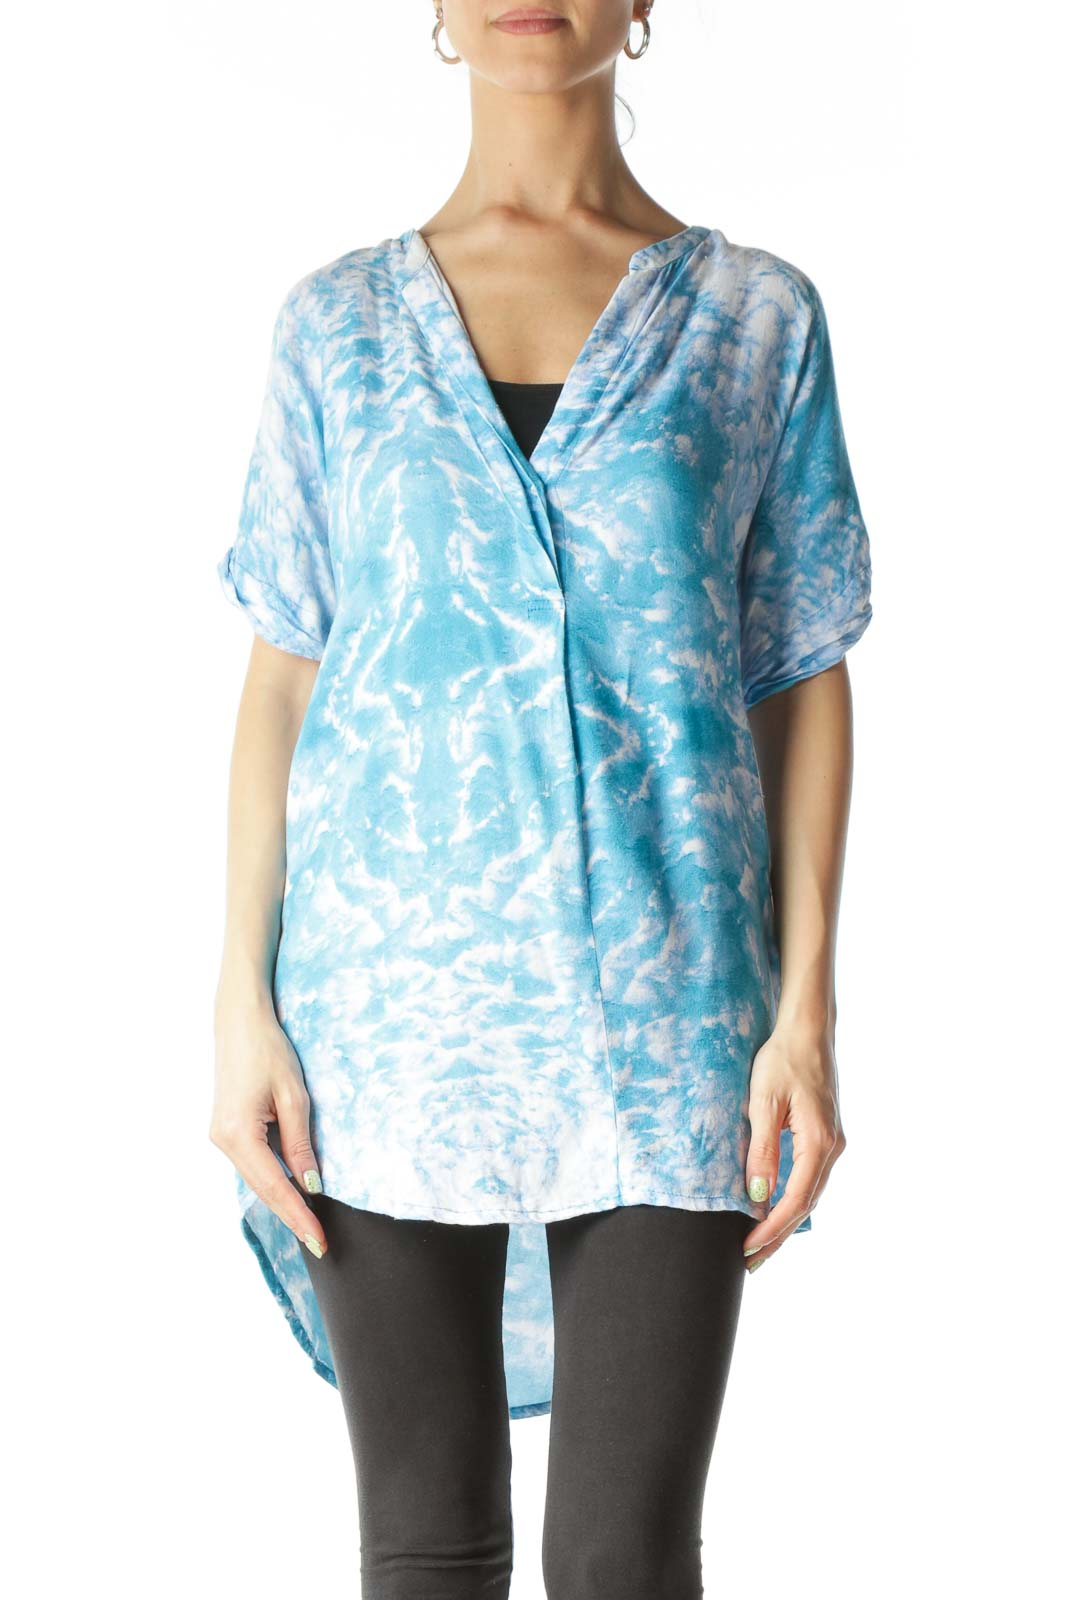 Blue and White Tie-Dye Patterned Asymmetrical-Fold Blouse Front